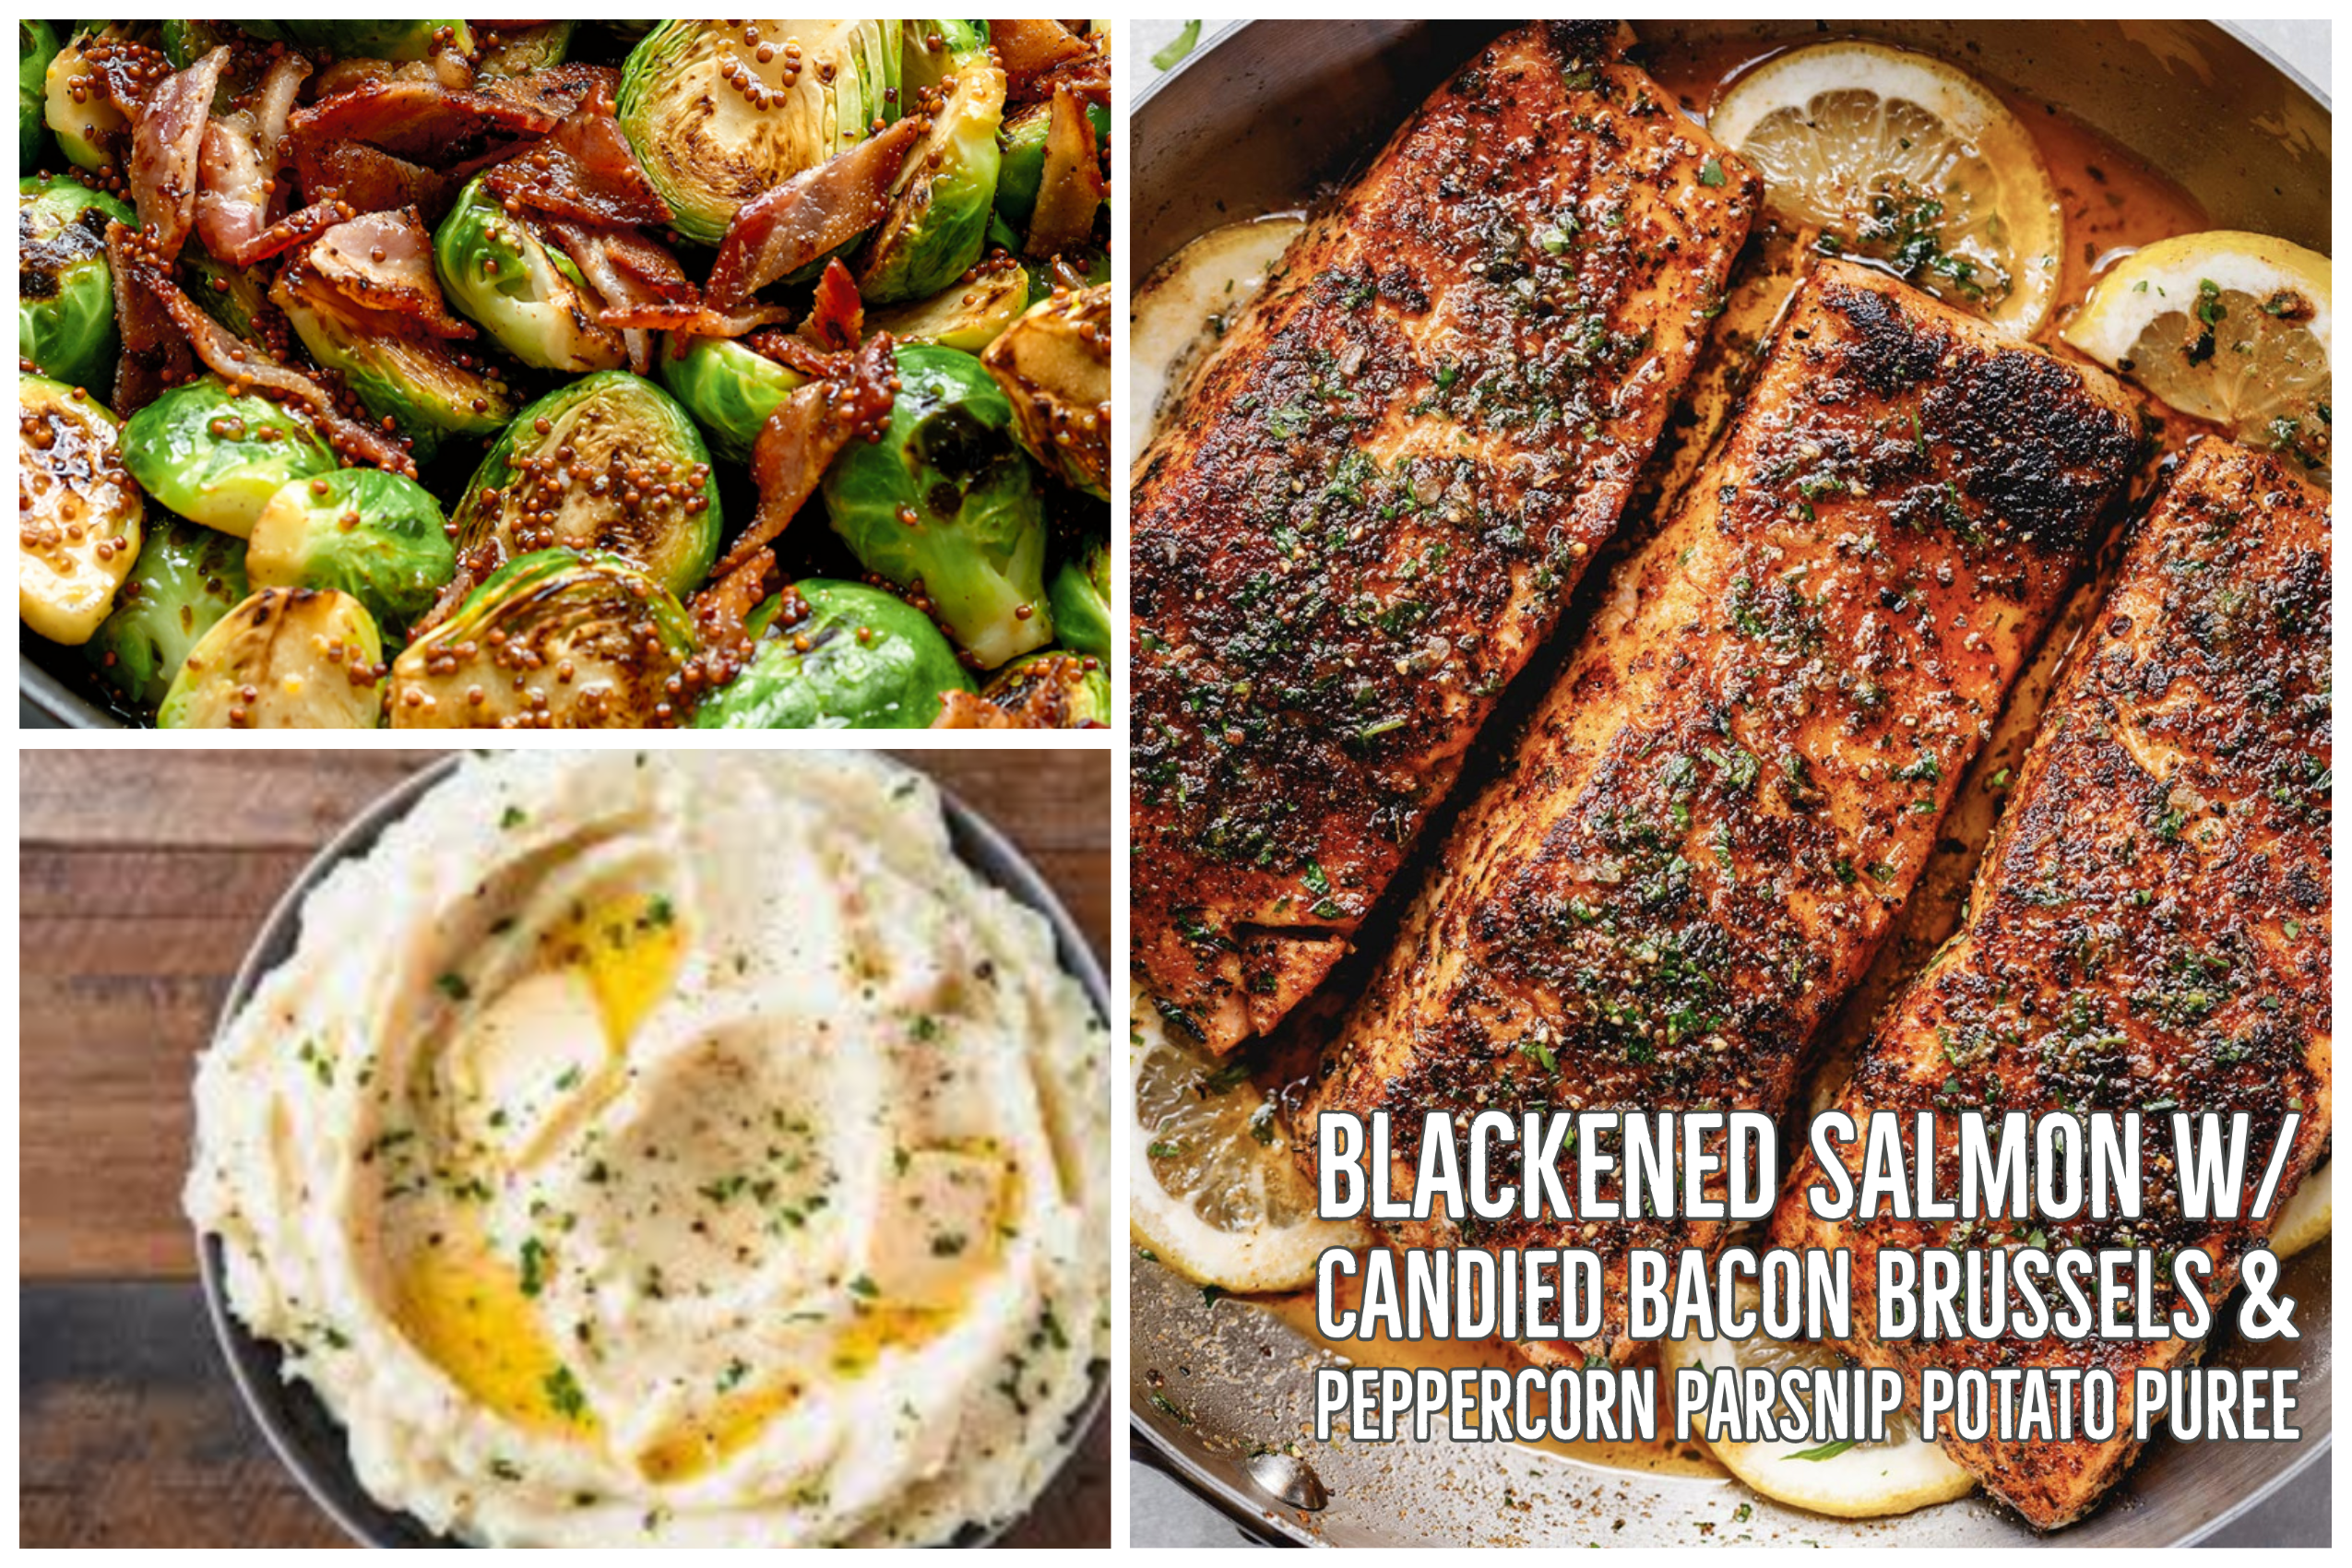 Blackened Salmon &Candied Bacon Brussels